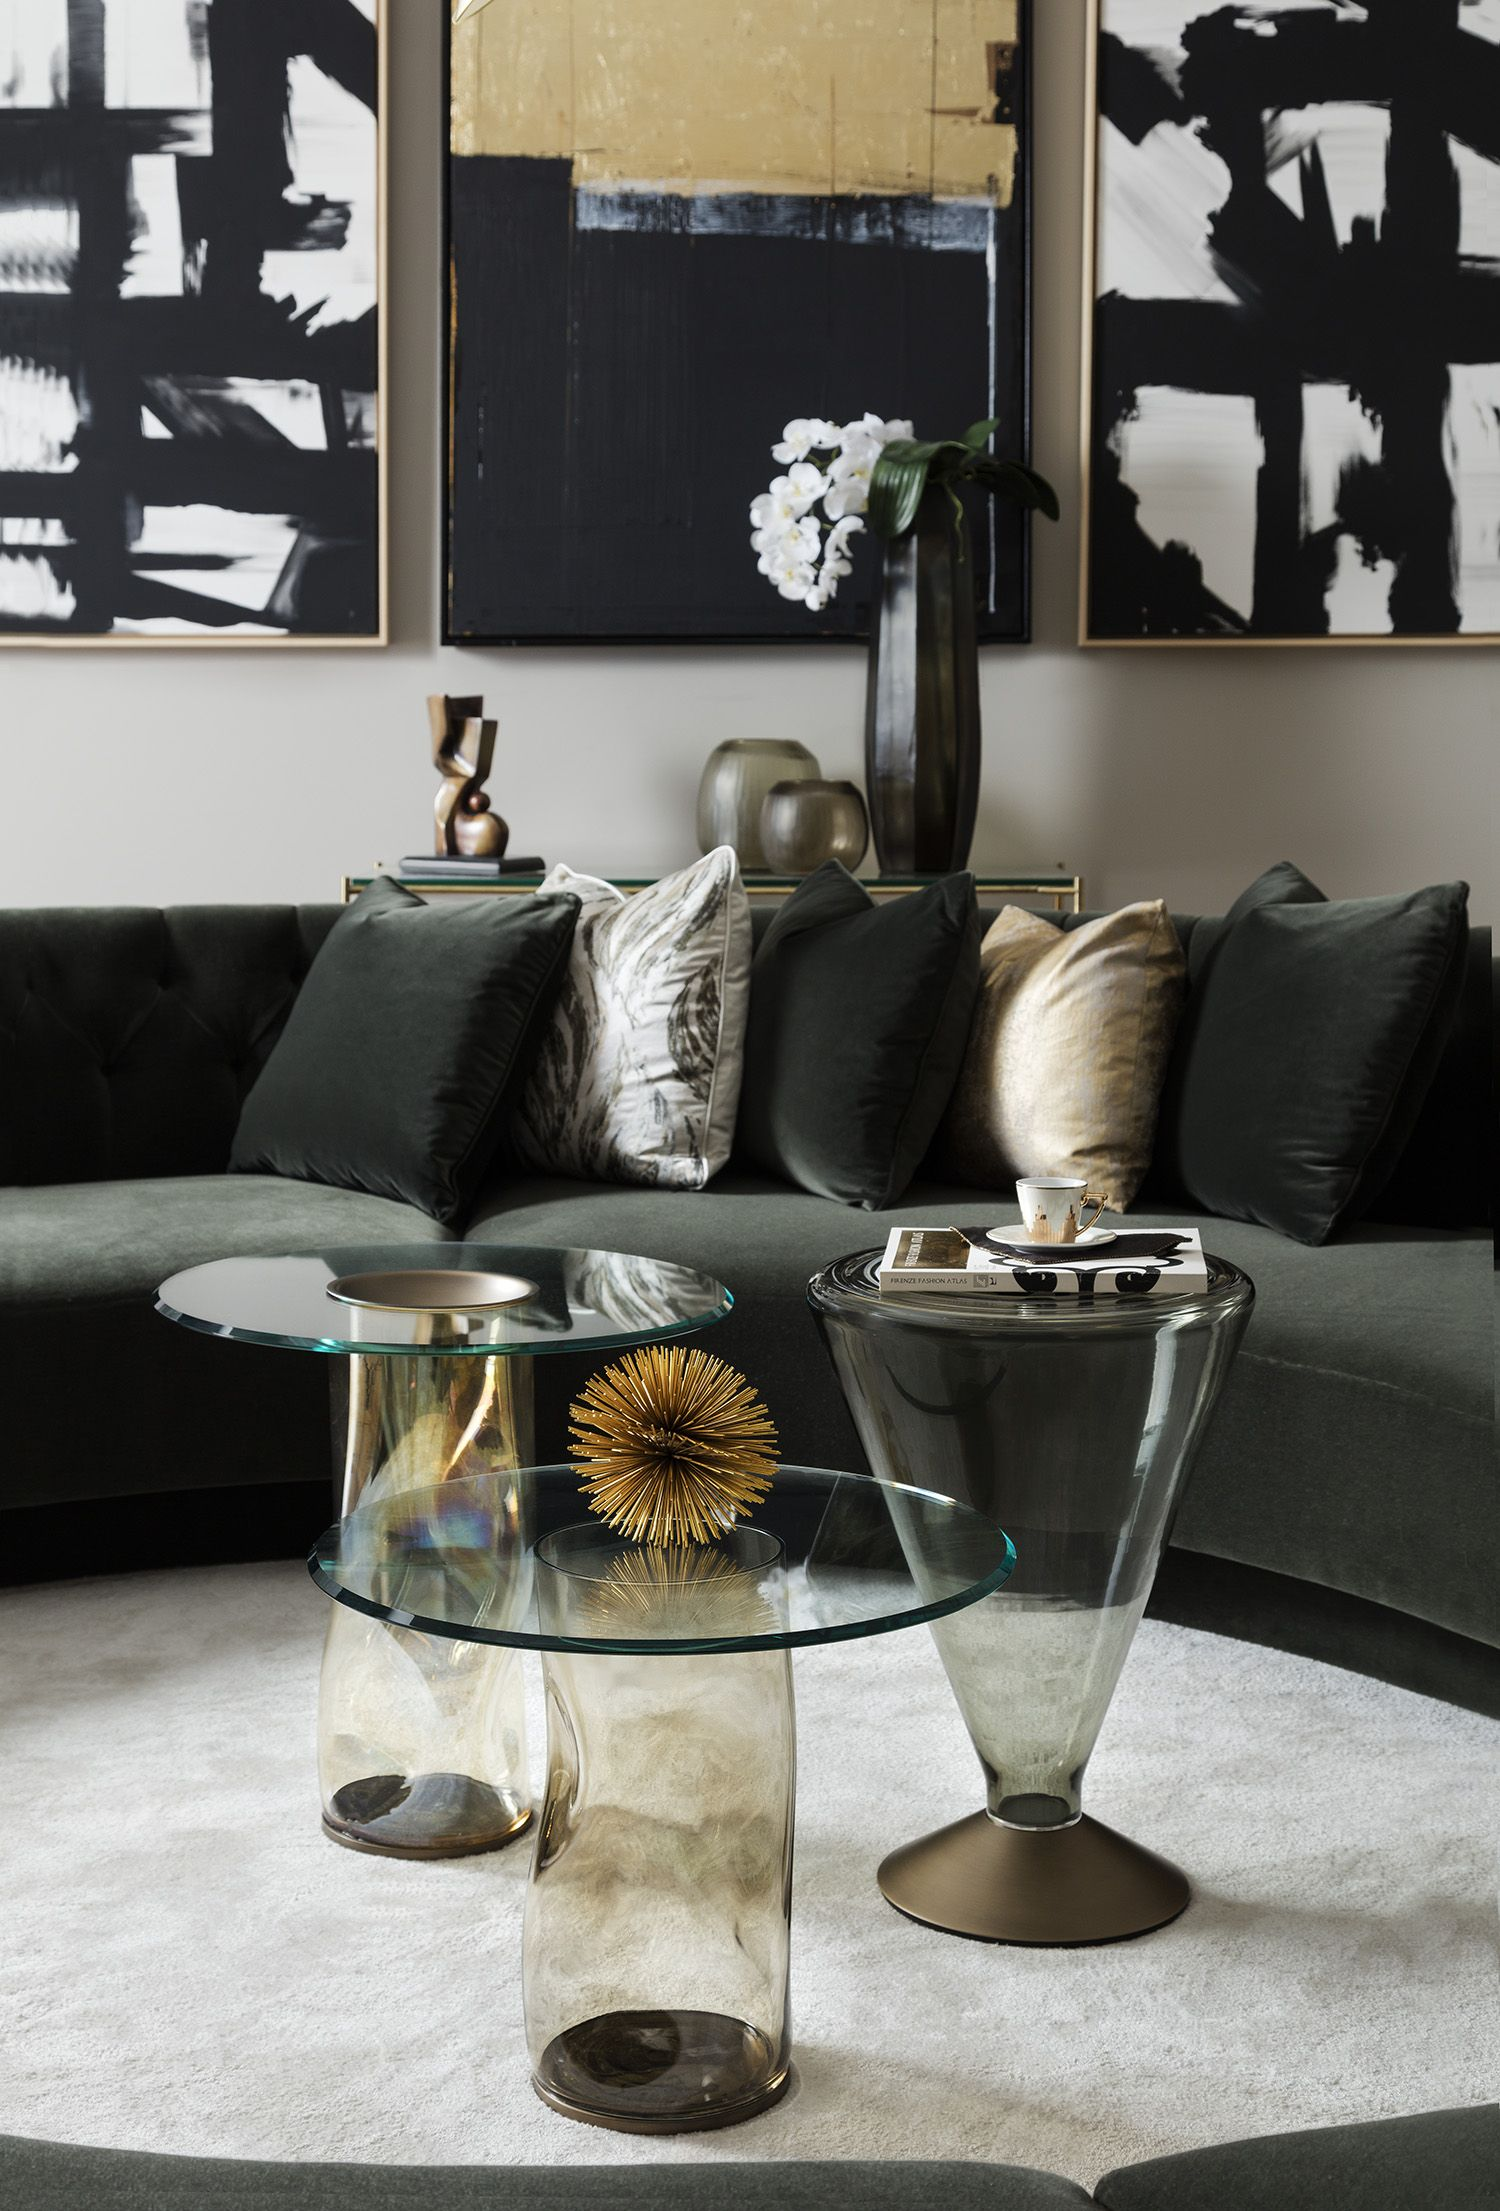 Our Dandolo And See Murano Glass Round Side Tables Look Beautiful Together Made Of Curved Sofa Living Room Luxury Living Room Design Centre Table Living Room